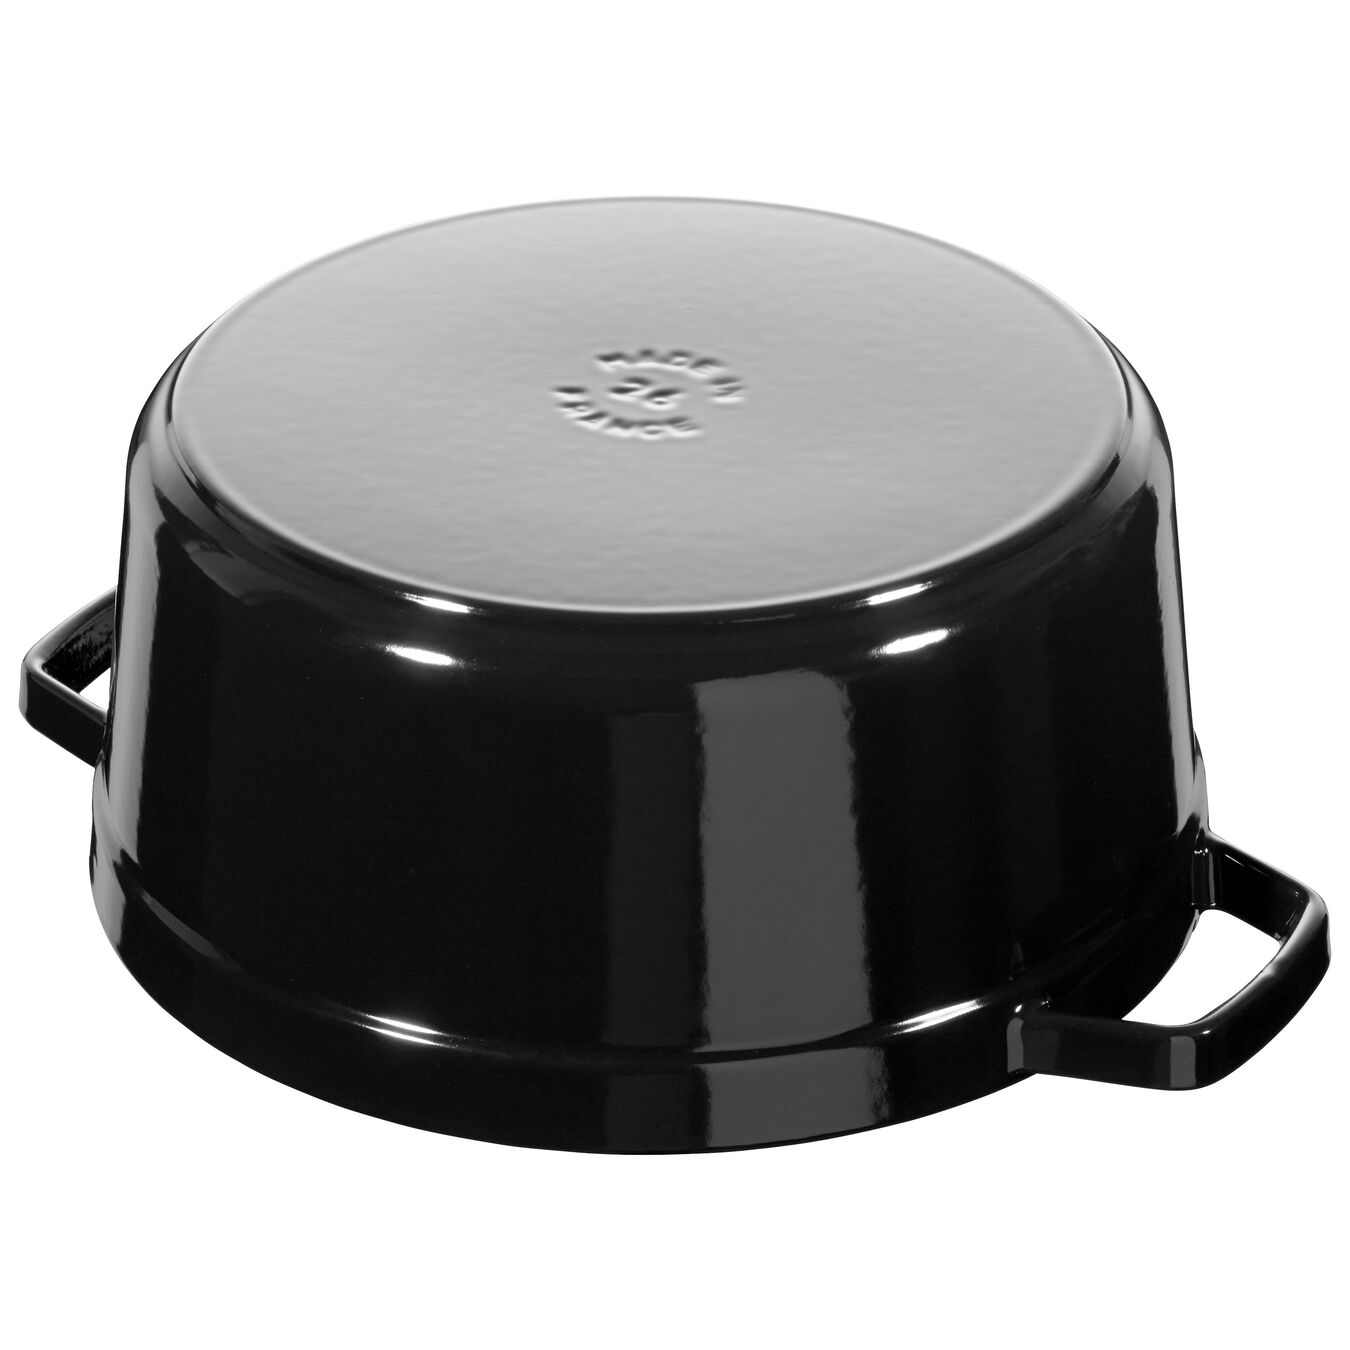 5.25 l round Cocotte, shiny-black - Visual Imperfections,,large 5